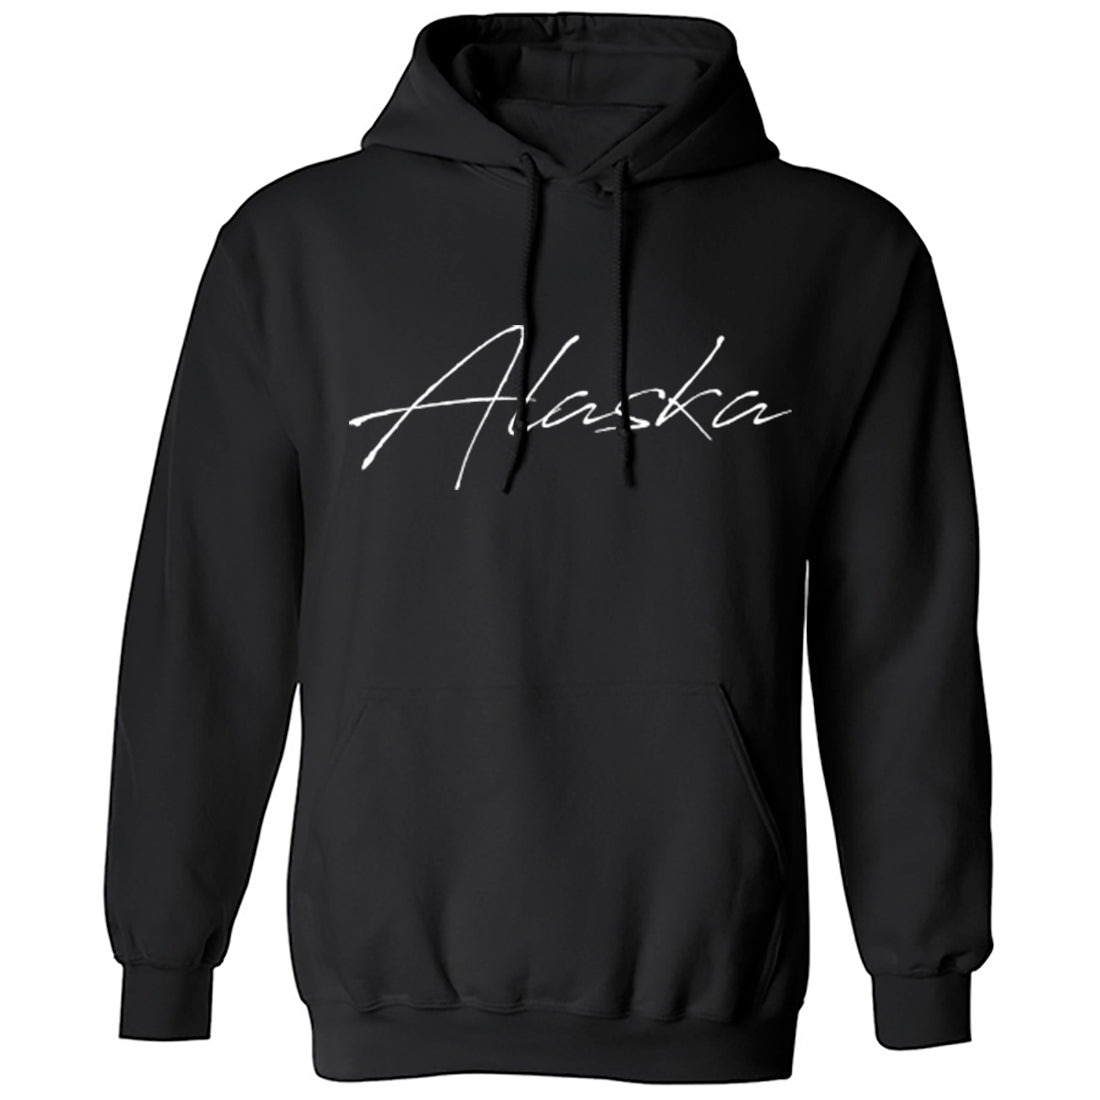 Alaska Script Unisex Hoodie K1702 - Illustrated Identity Ltd.